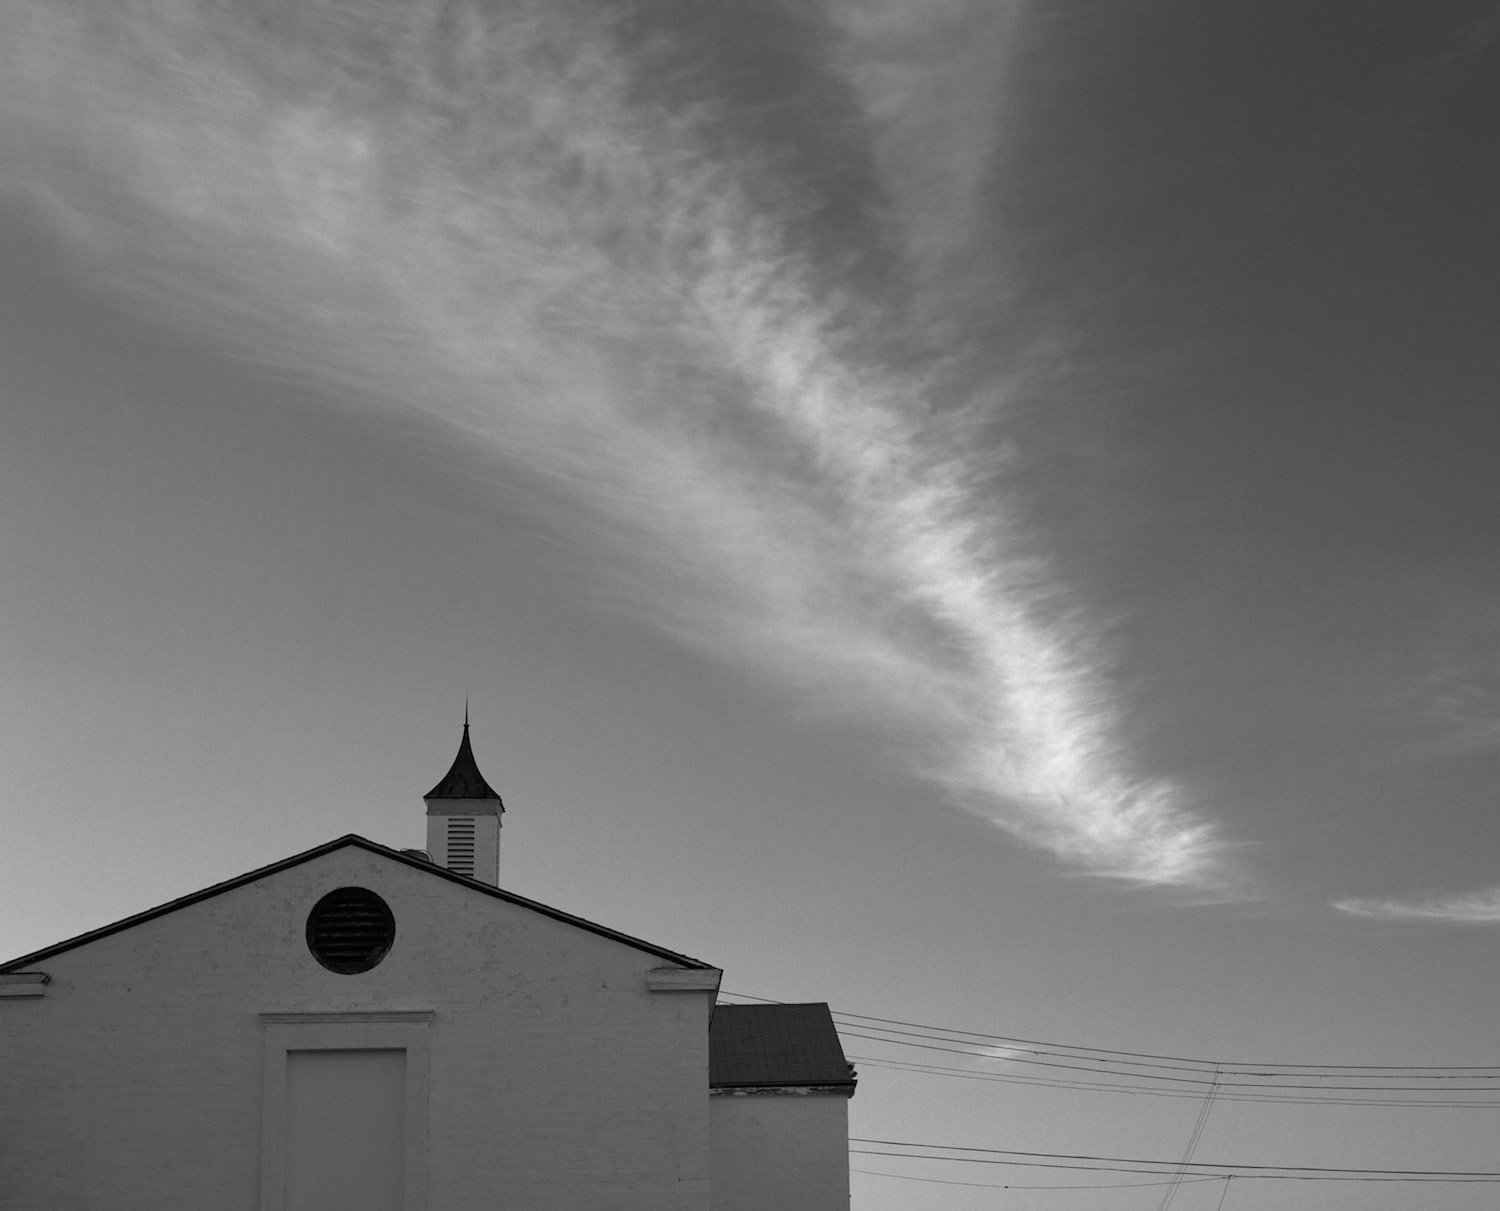 Church and Cloud